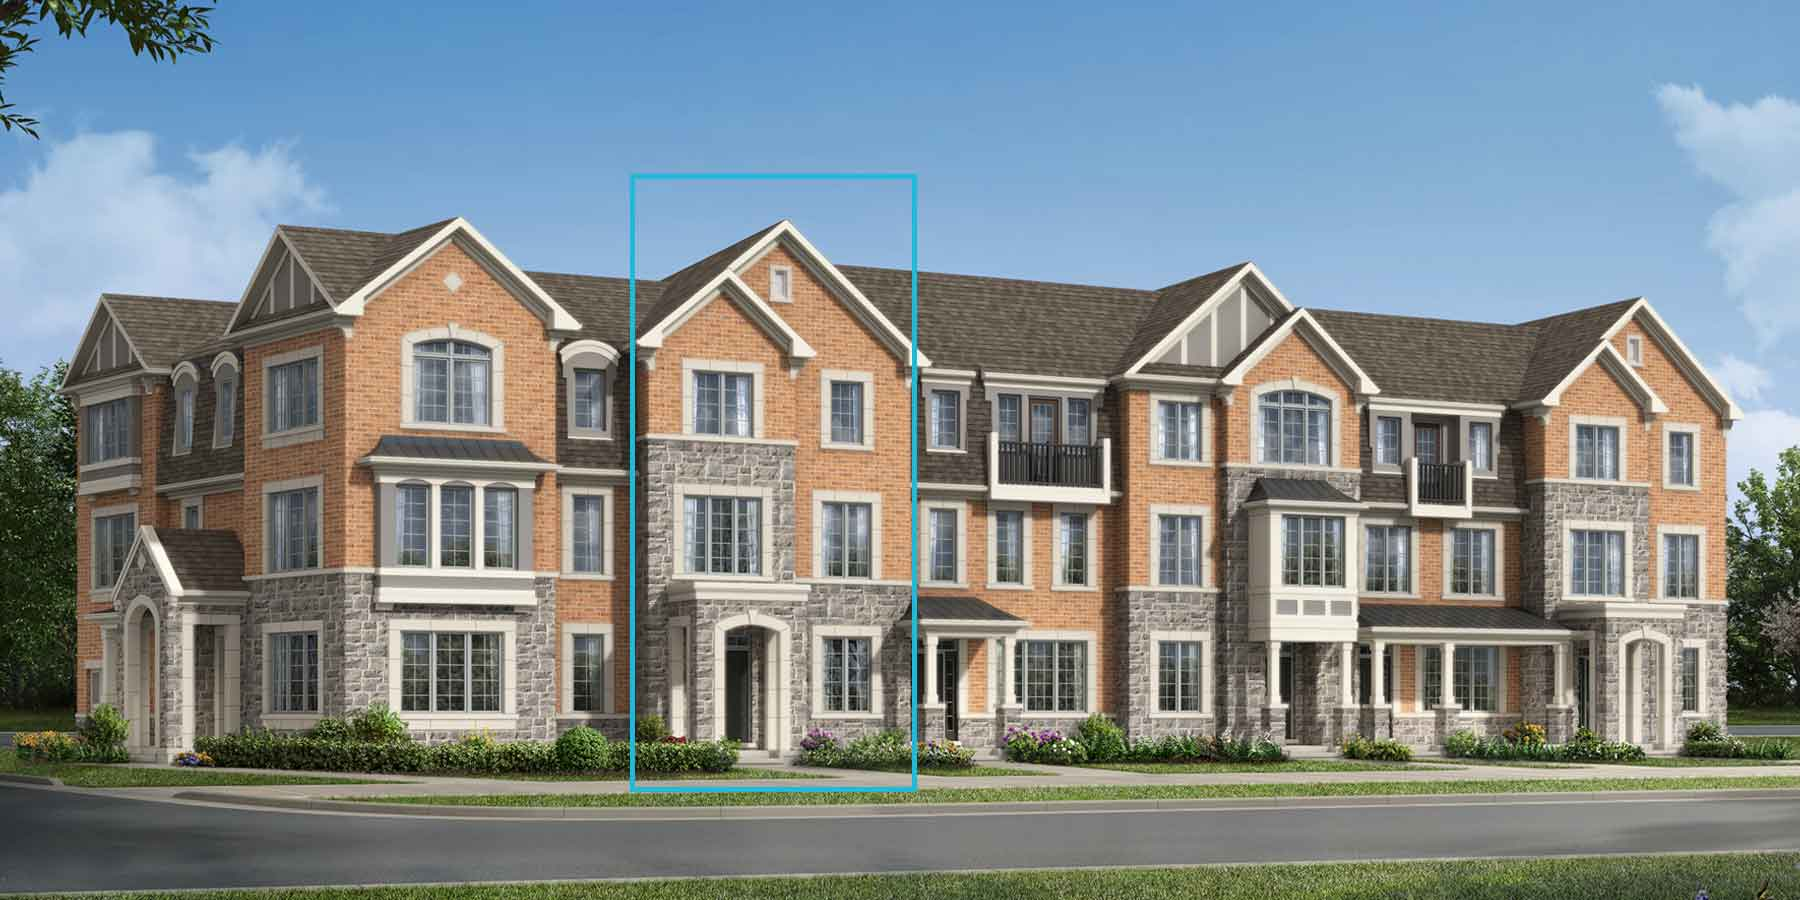 Chestnut East Plan TownHomes at Upper Joshua Creek in Oakville Ontario by Mattamy Homes